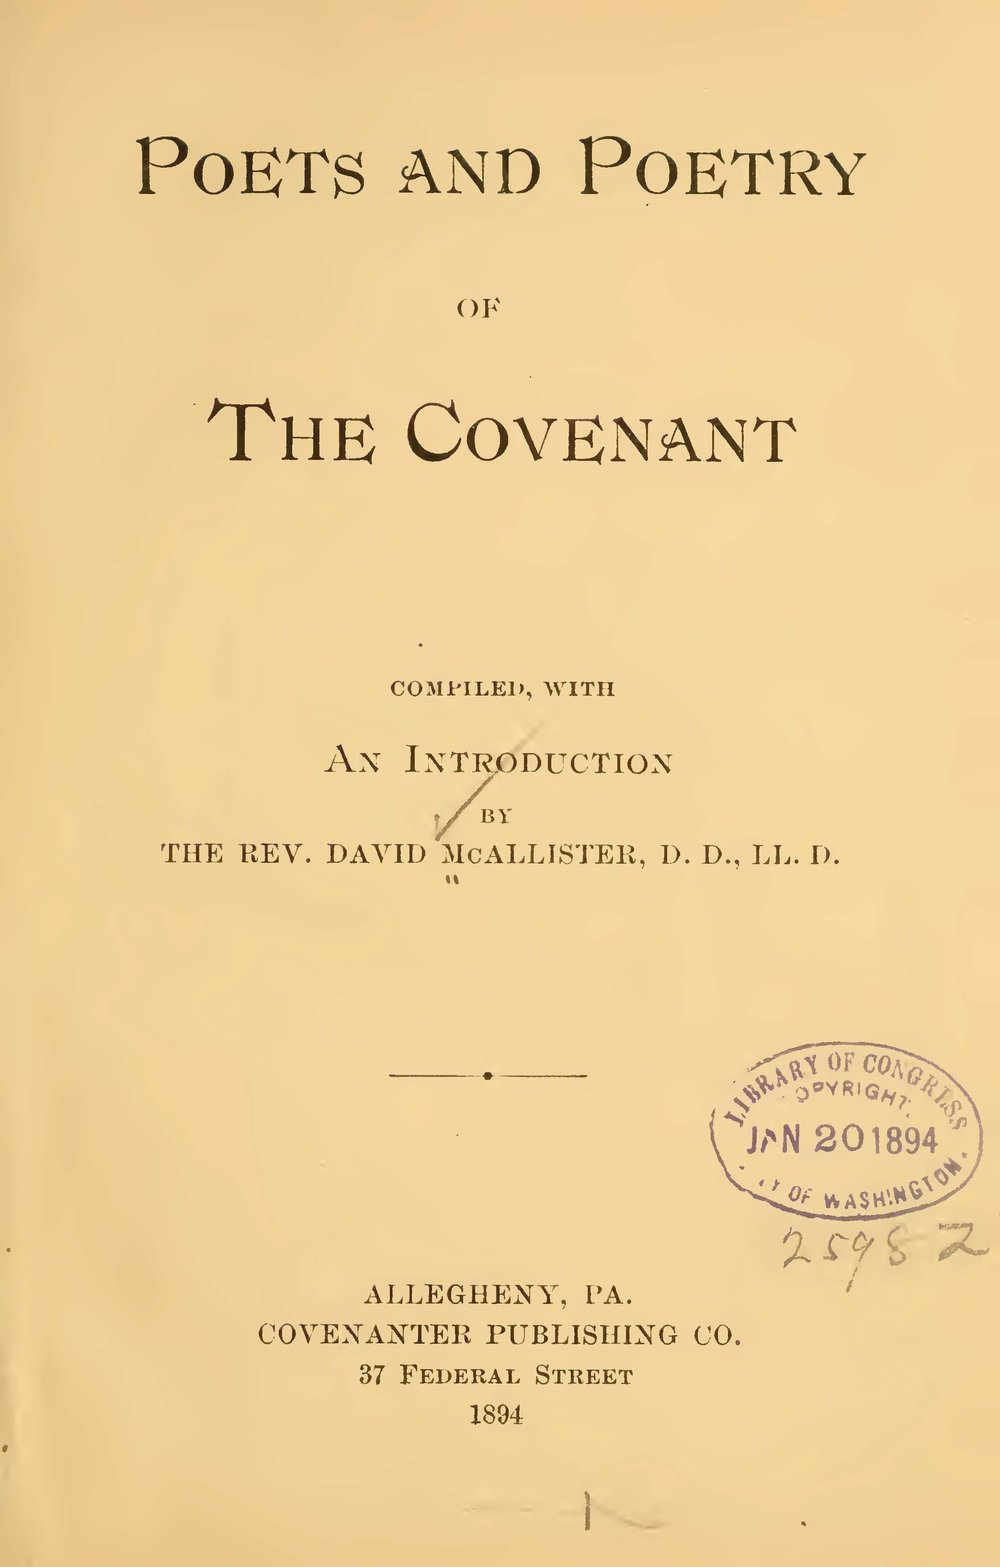 McAllister, David, Poets and Poetry of the Covenant Title Page.jpg